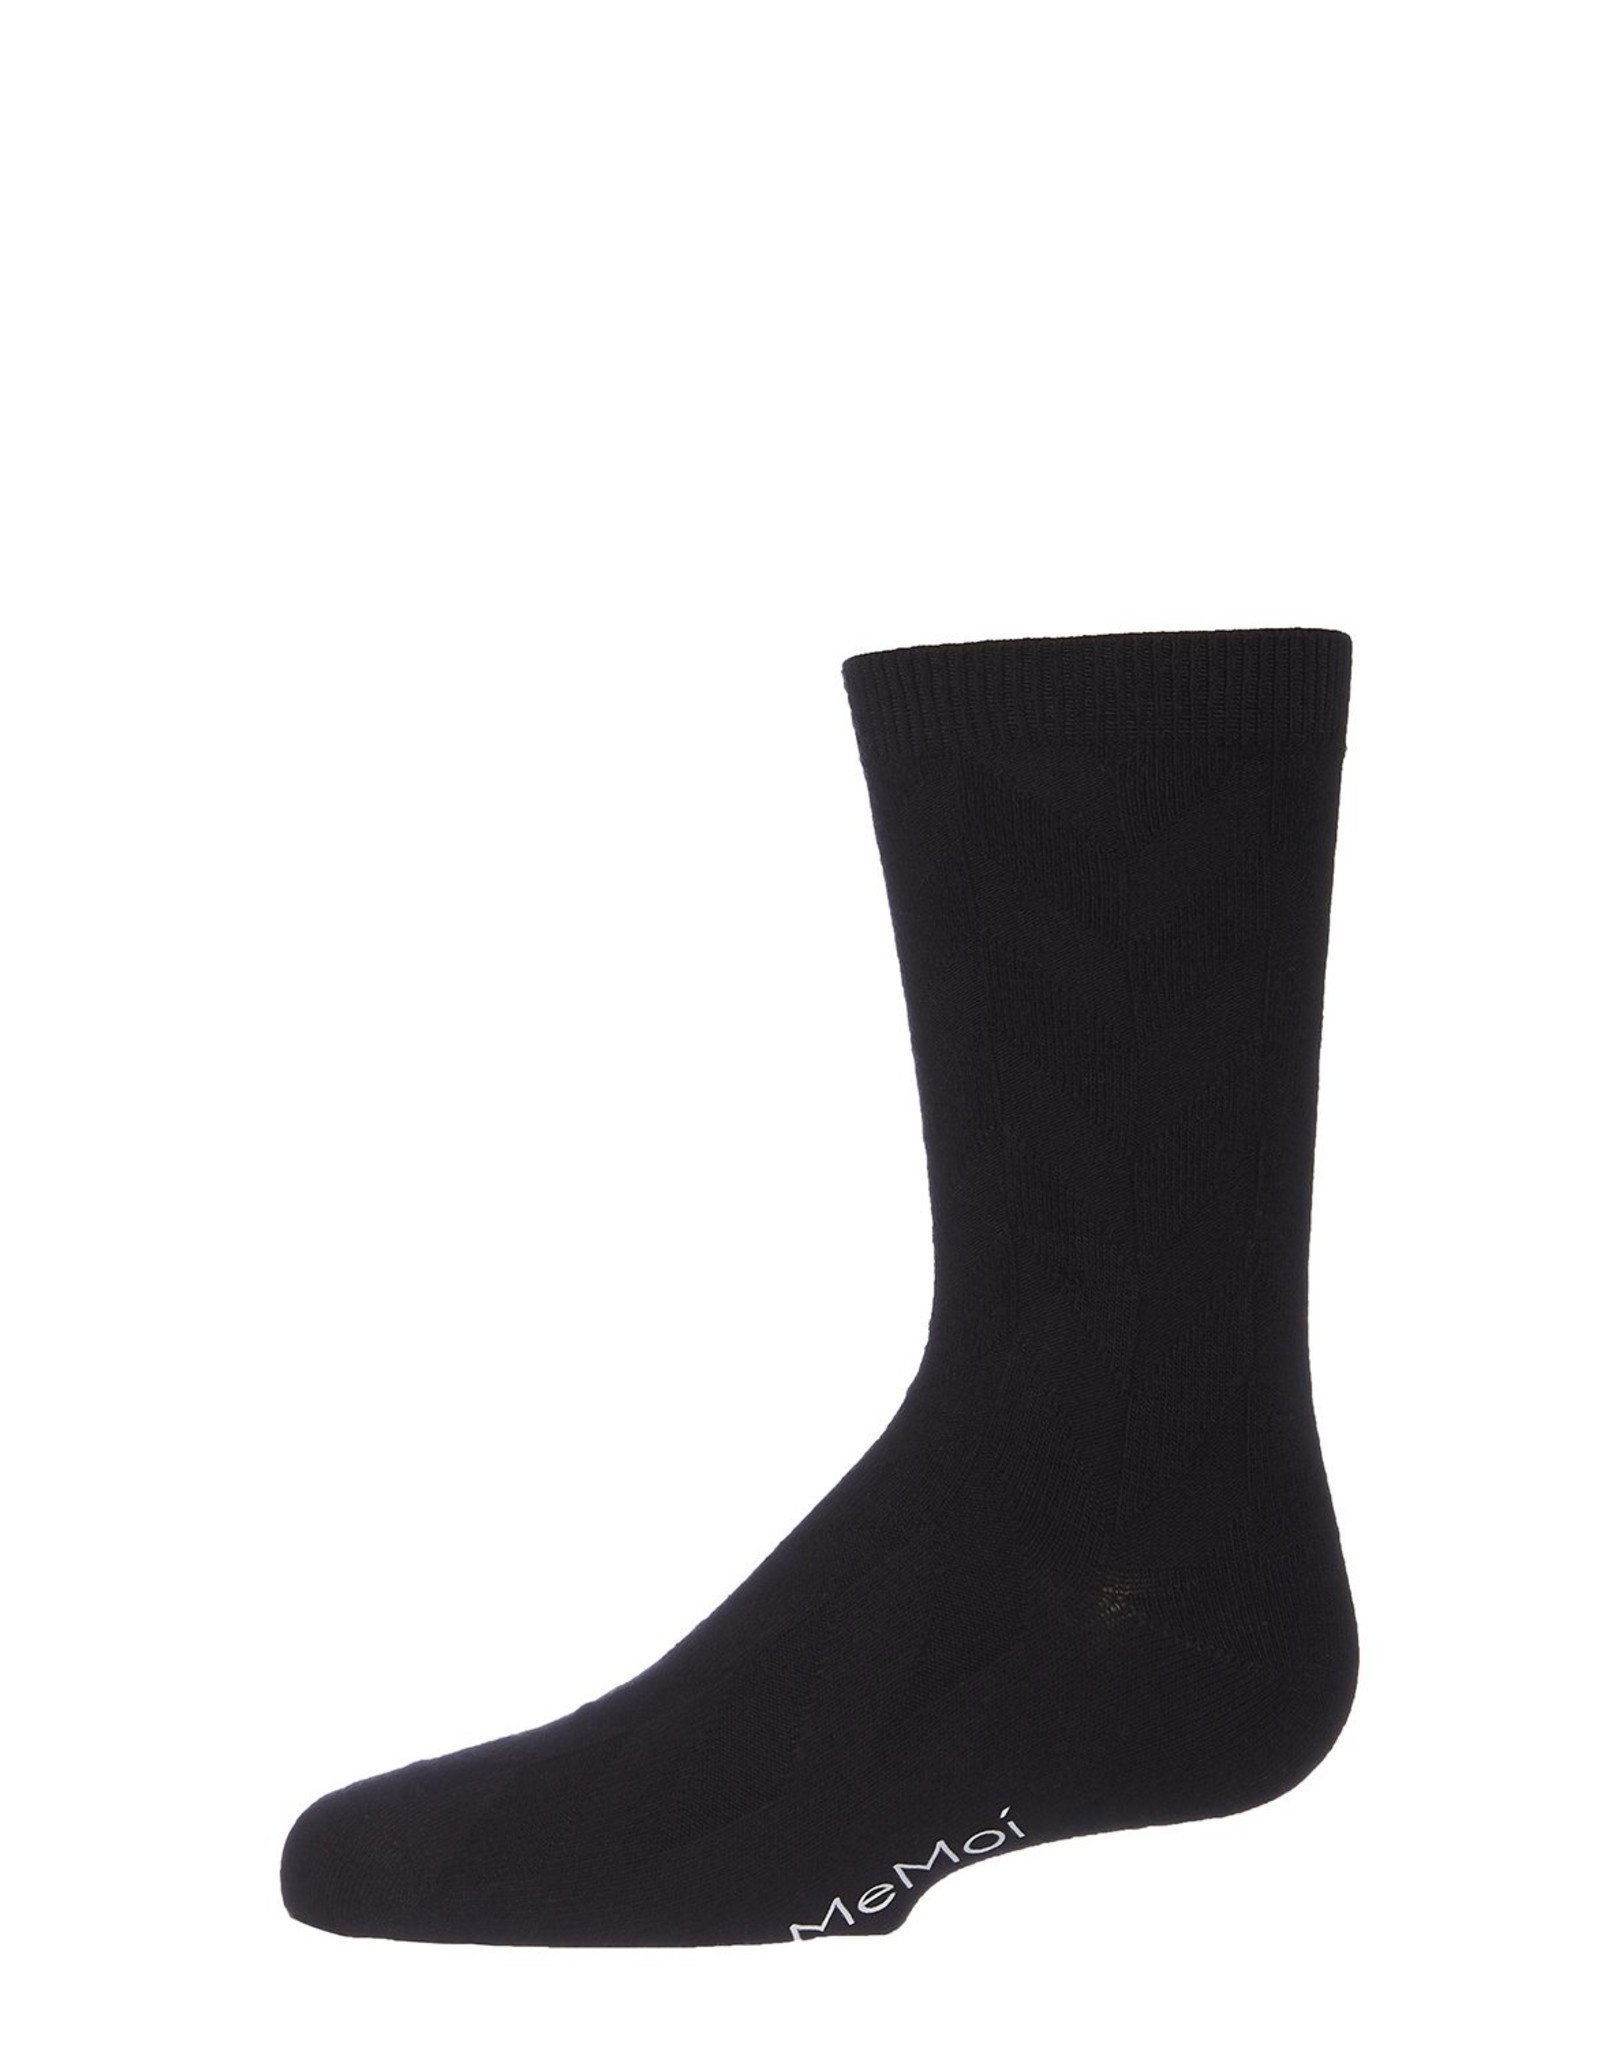 Memoi Memoi Boys Bamboo Diamond Sock